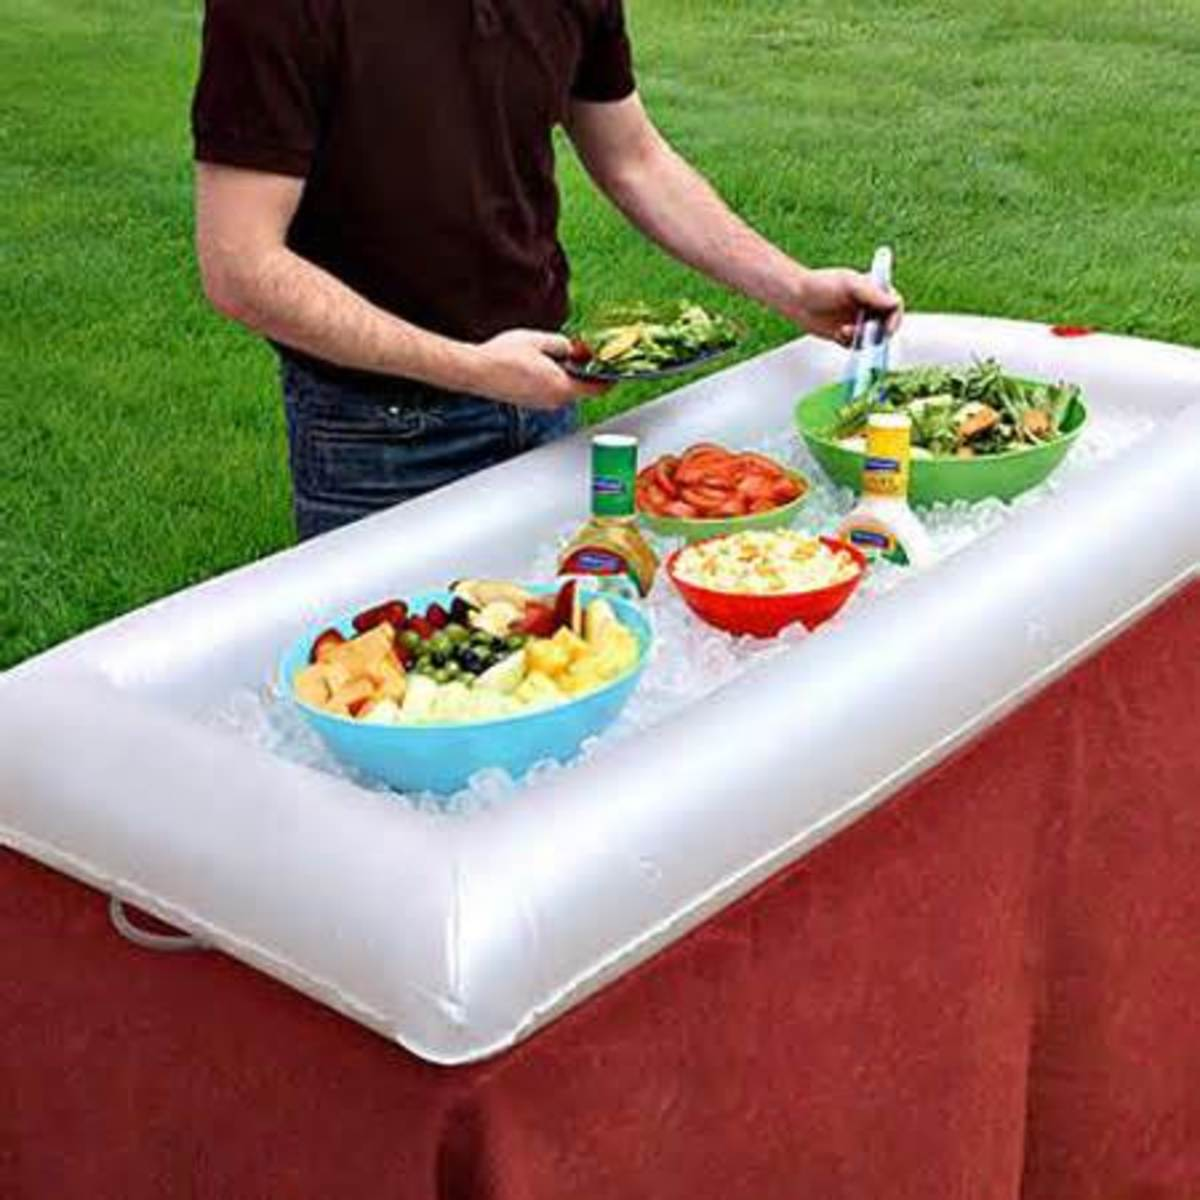 Blow up salad bars for ice can be purchased online or in party stores